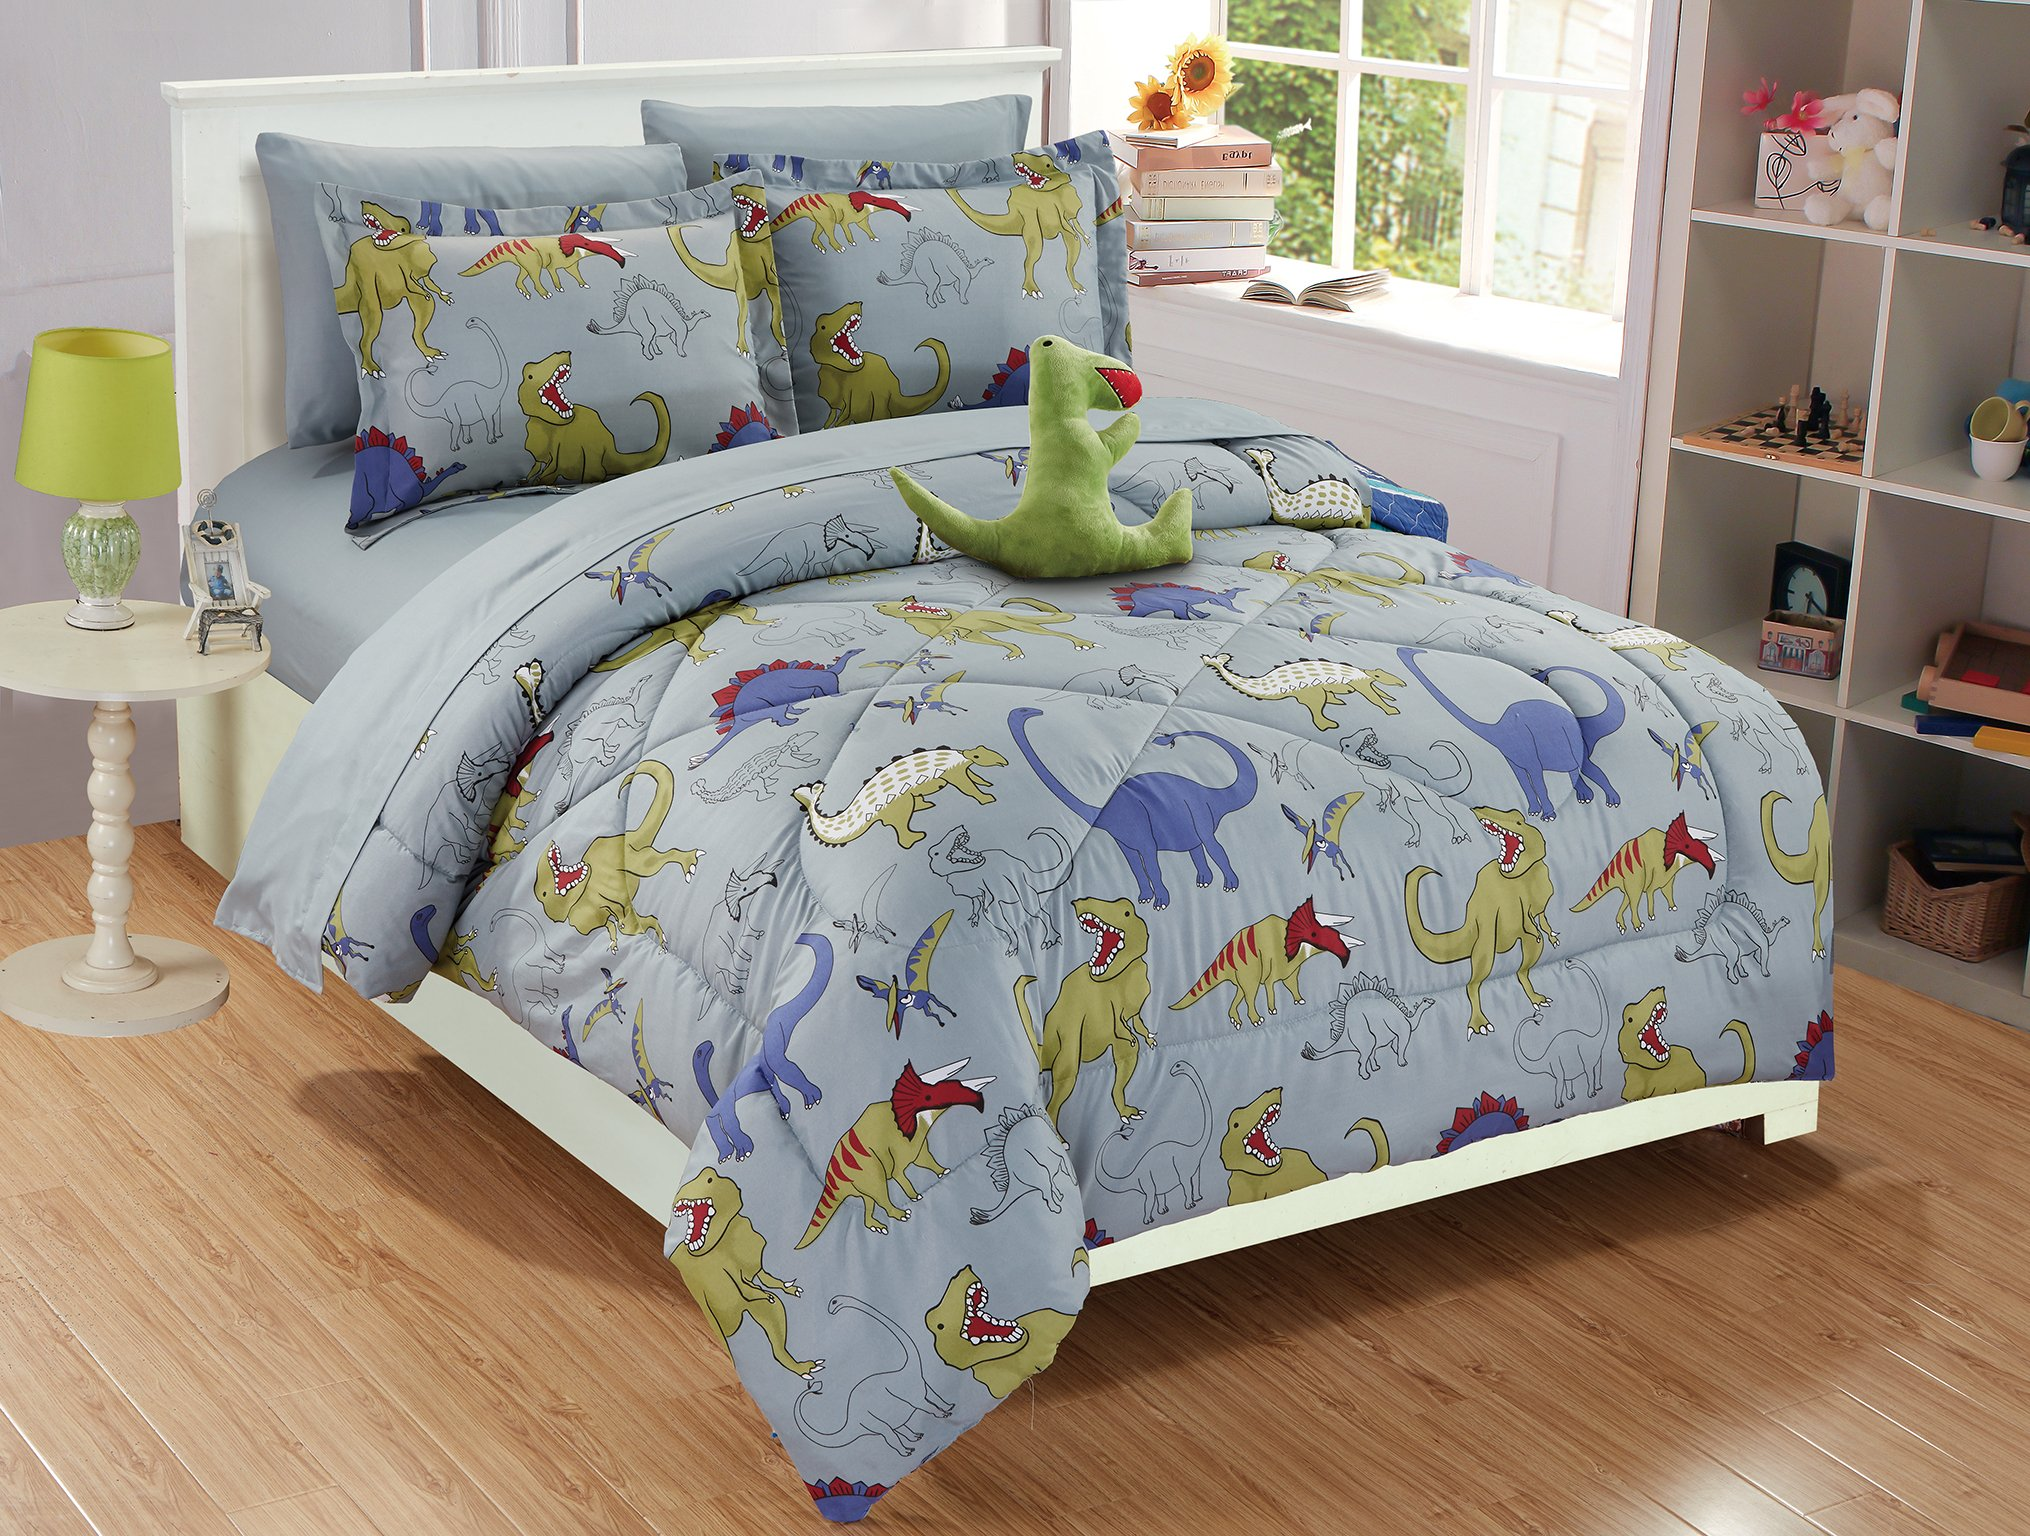 Linen Plus Full Size 8pc Comforter Set for Boys Dinosaur Grey Blue Red New by Linen Plus